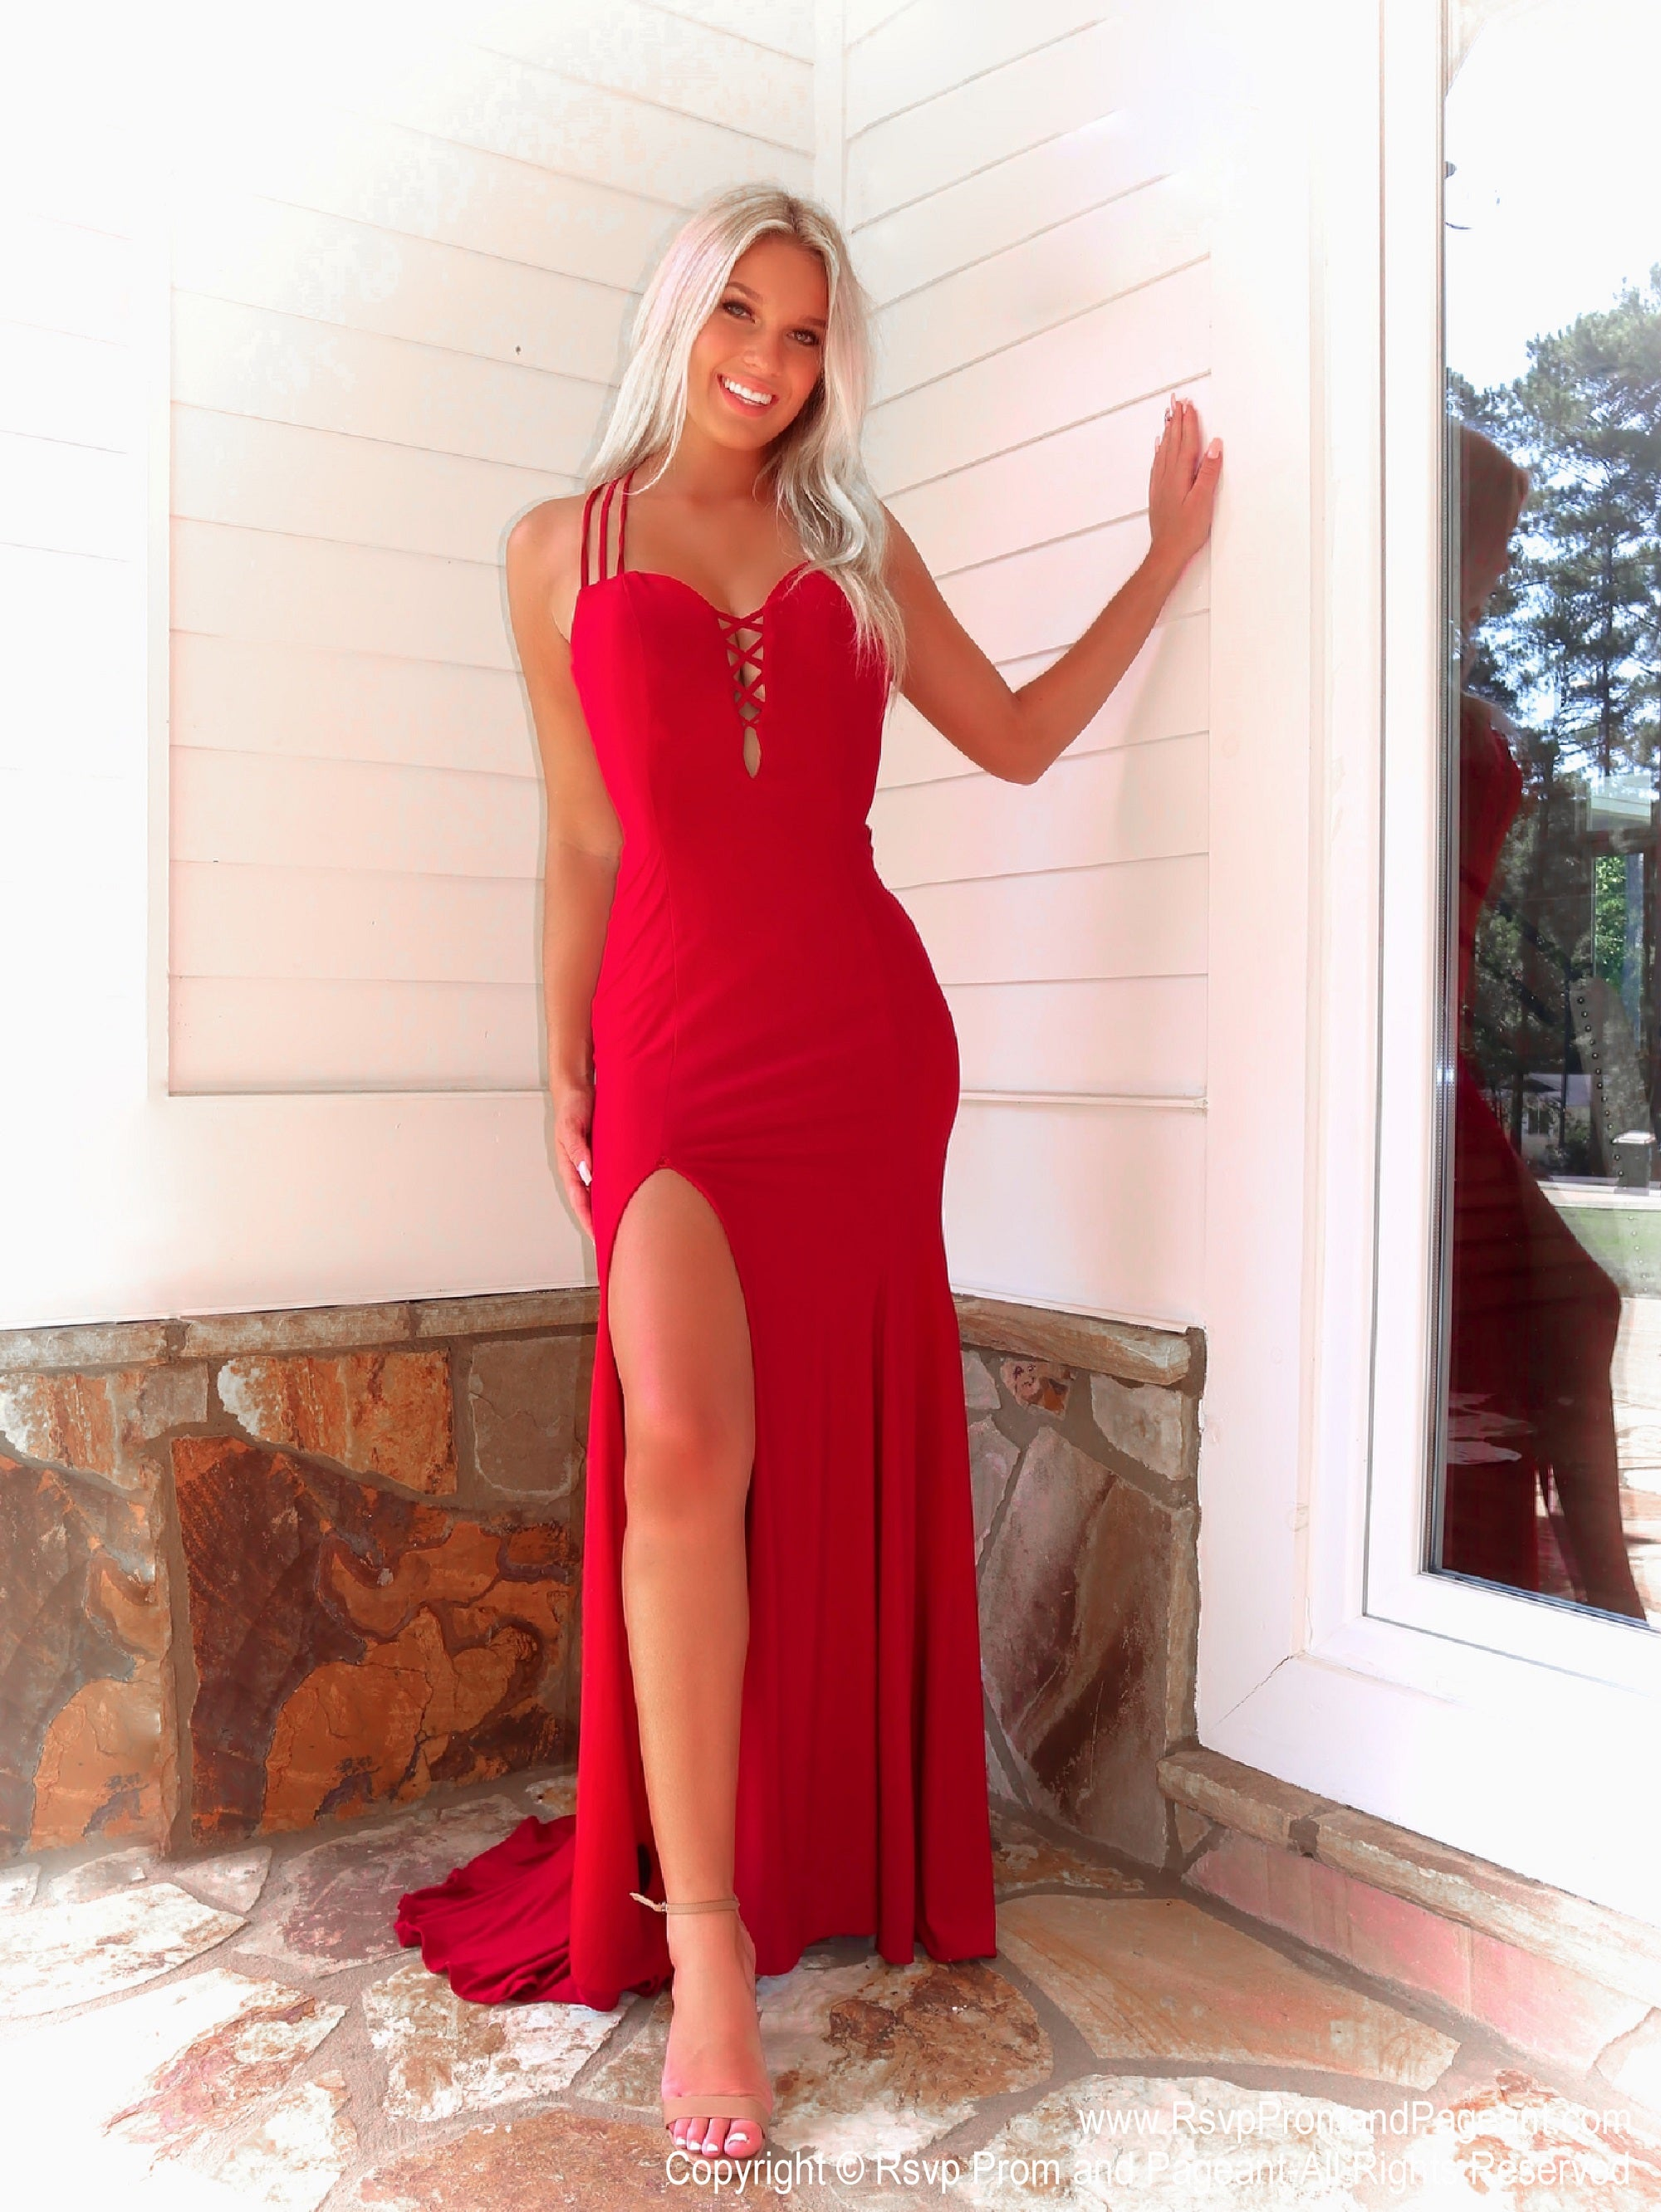 buy \u003e high heels for red dress, Up to